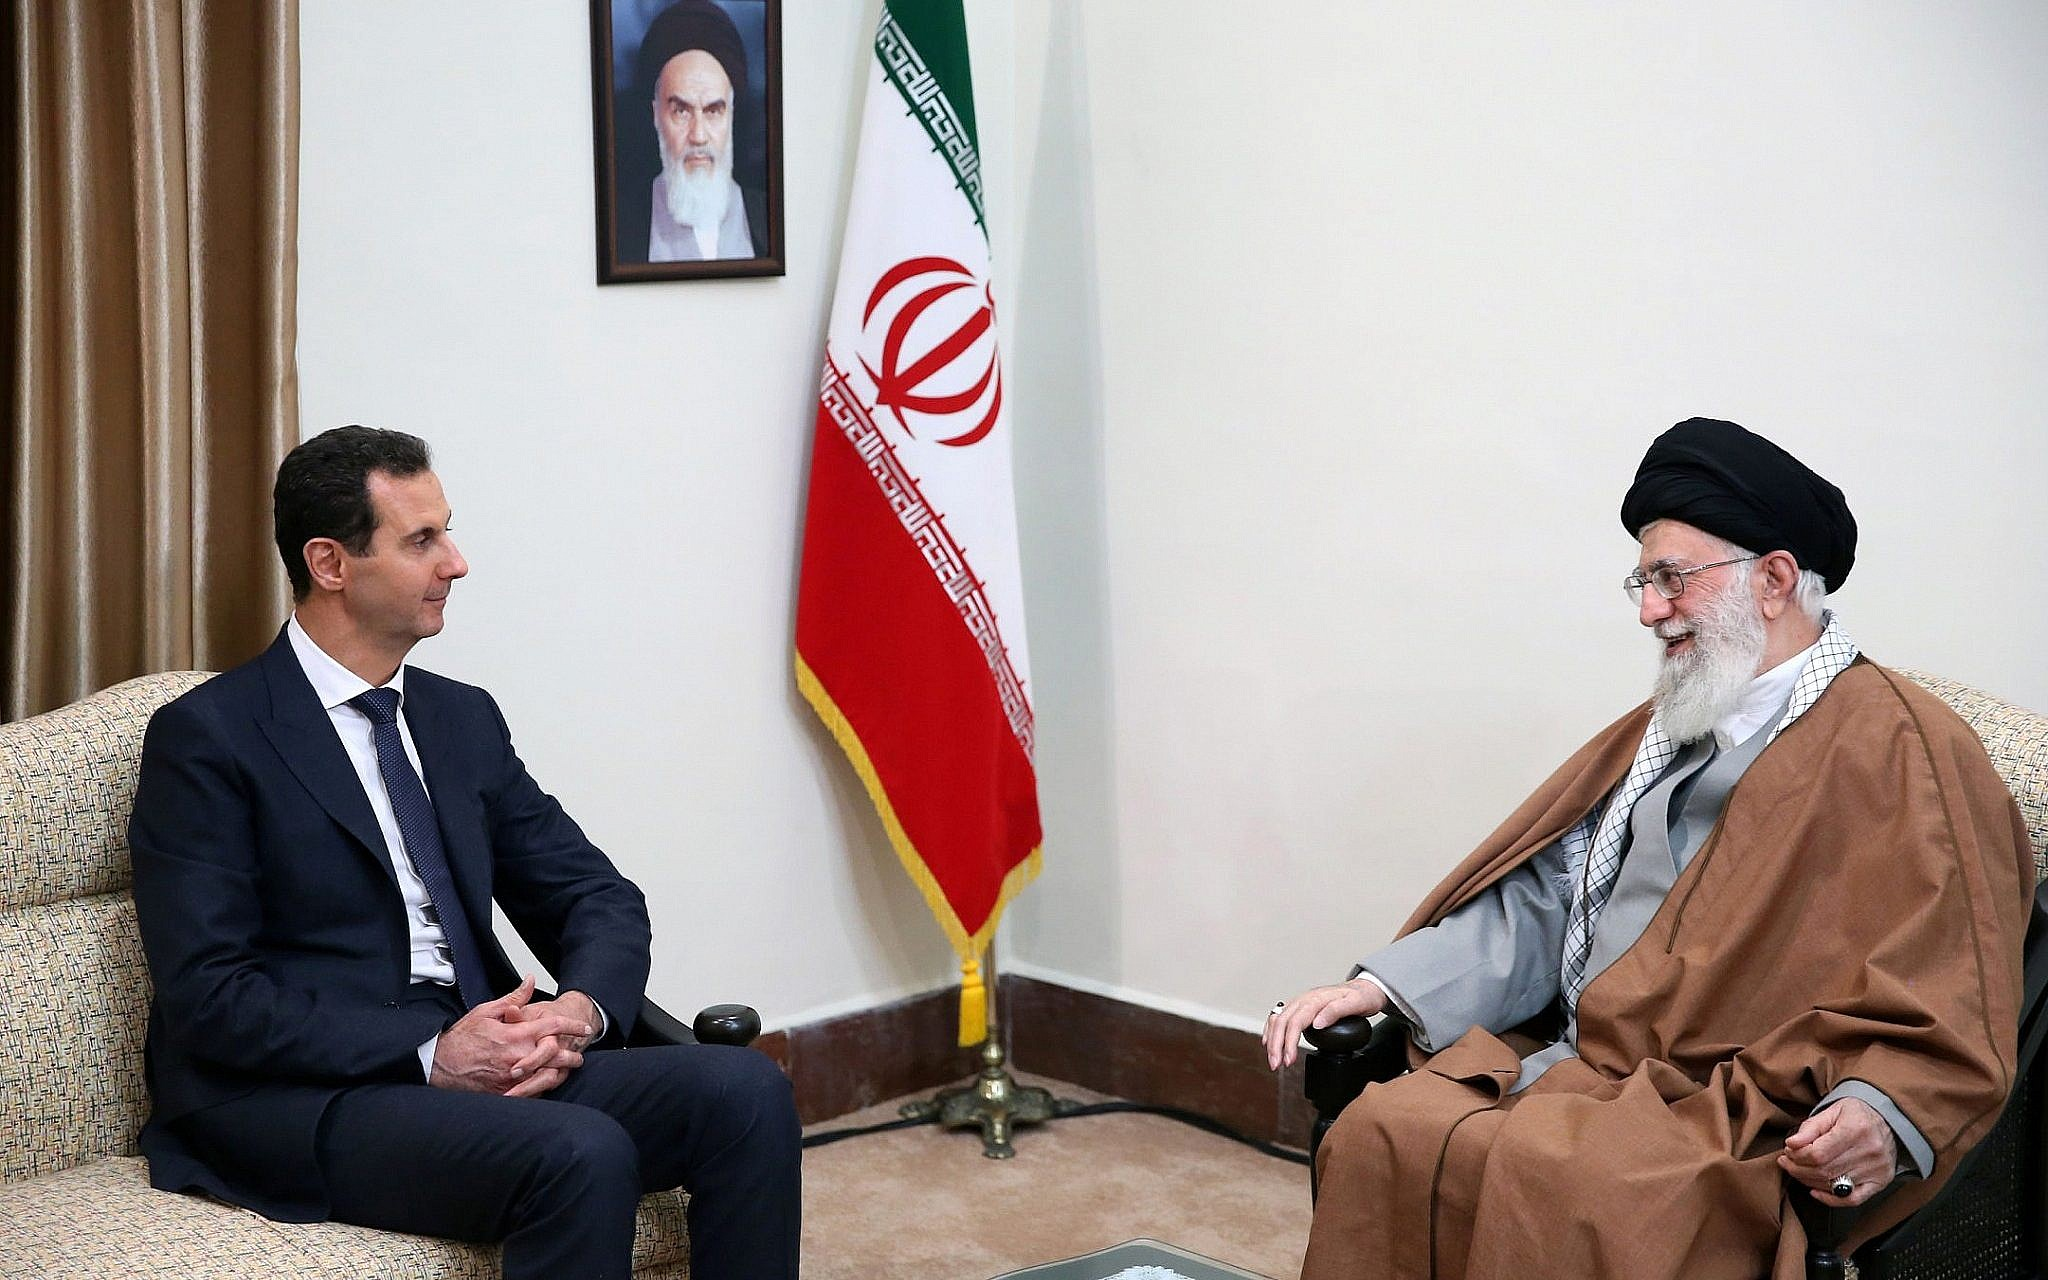 Syrian President Bashar Assad Meets With Iran Supreme Leader